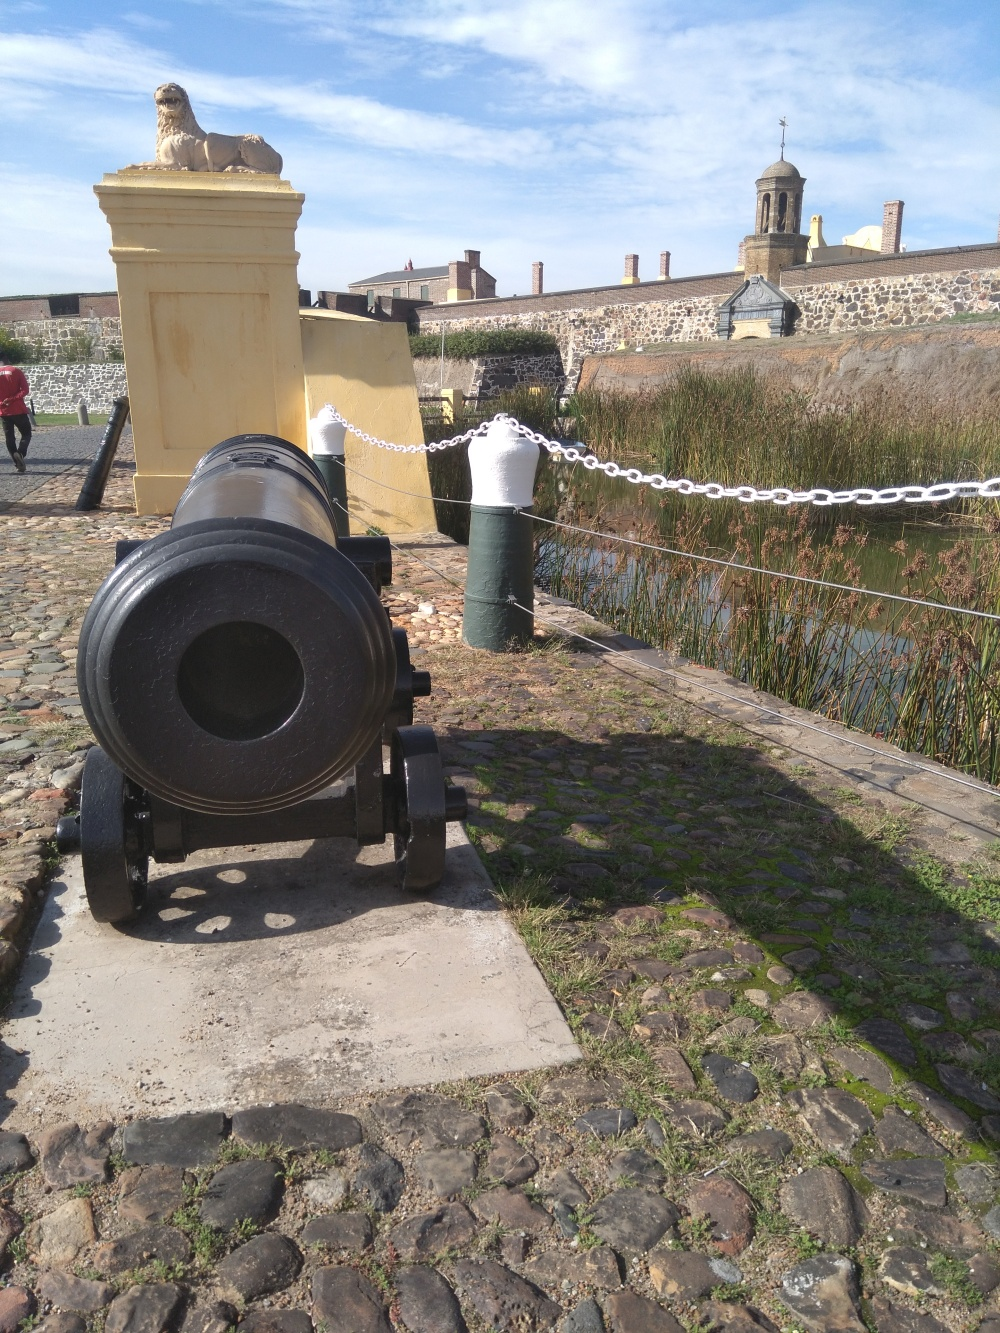 Canon at Goodhope Castle